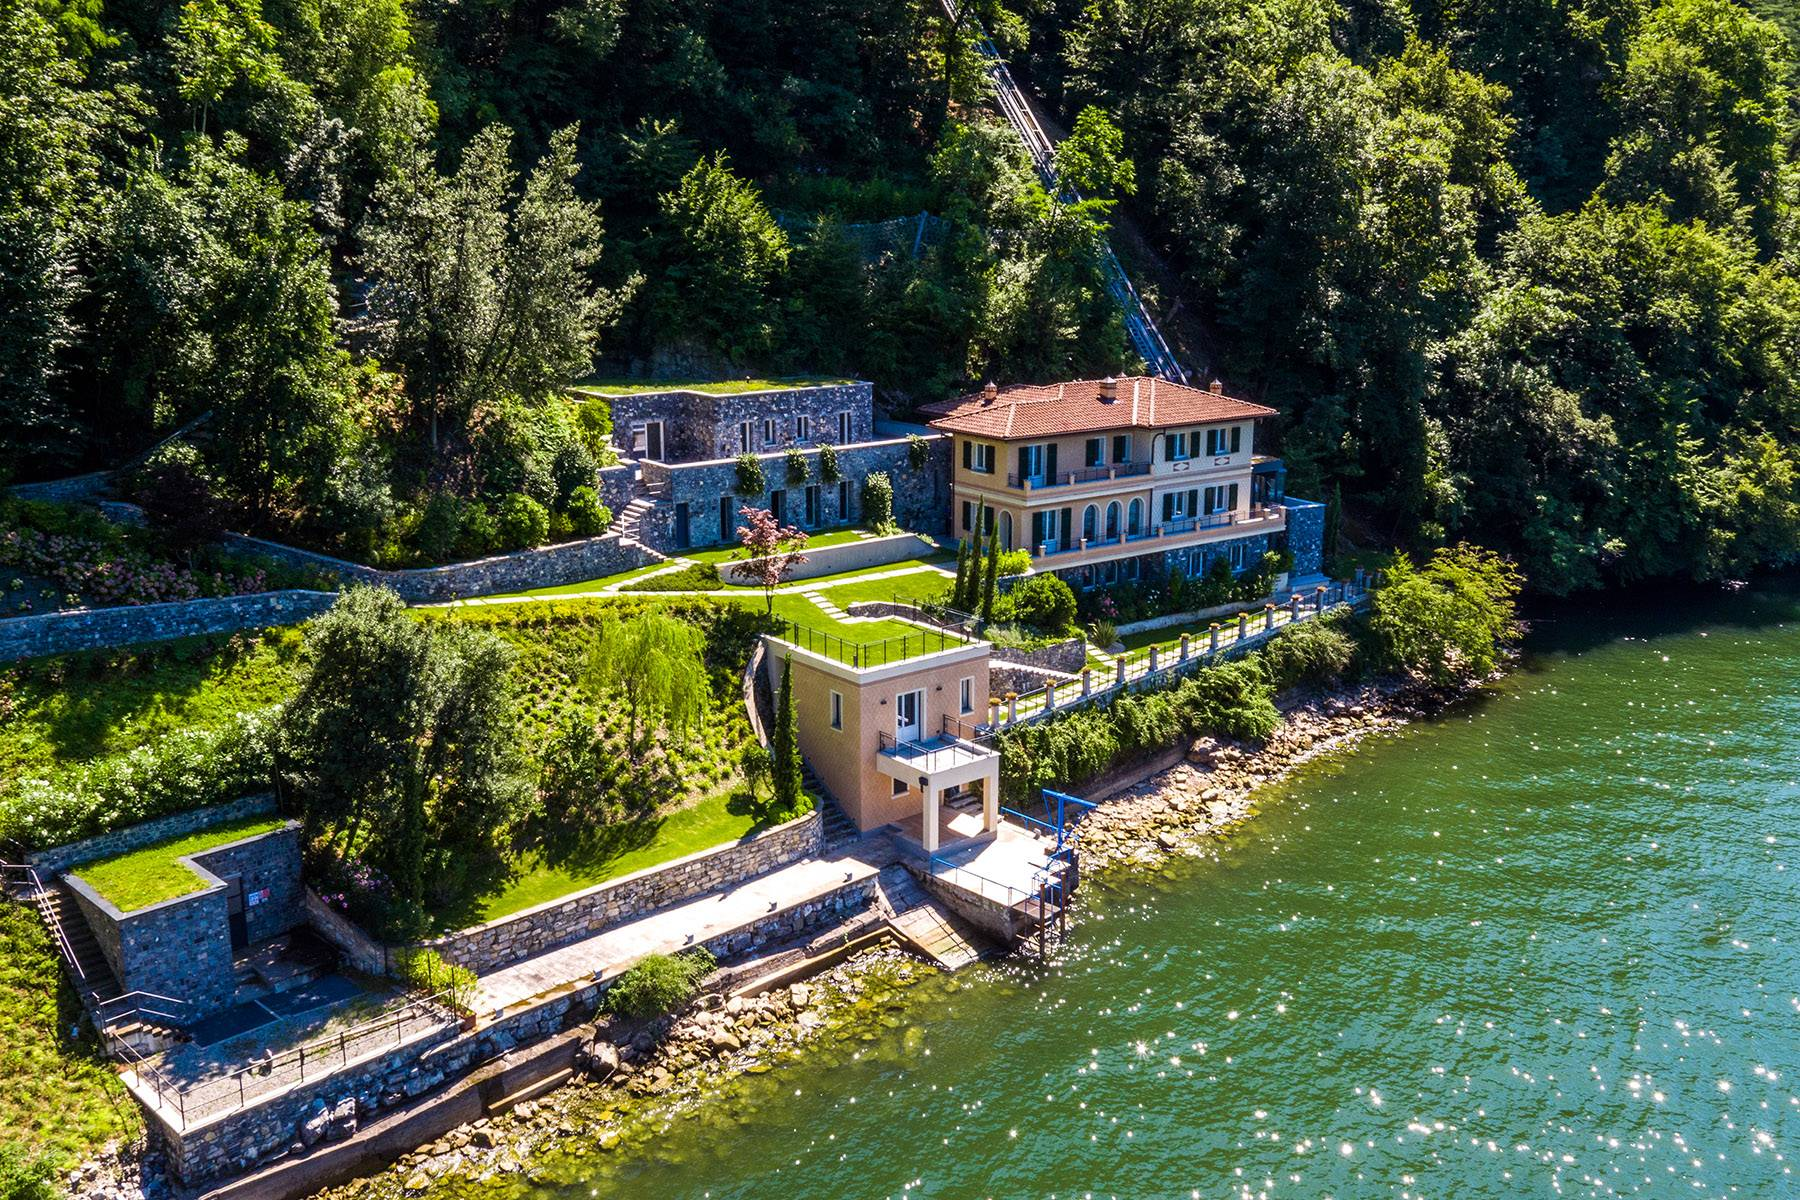 Property for Sale at Fascinating villa in one of the most strategic areas of the lake Blevio, Como Italy